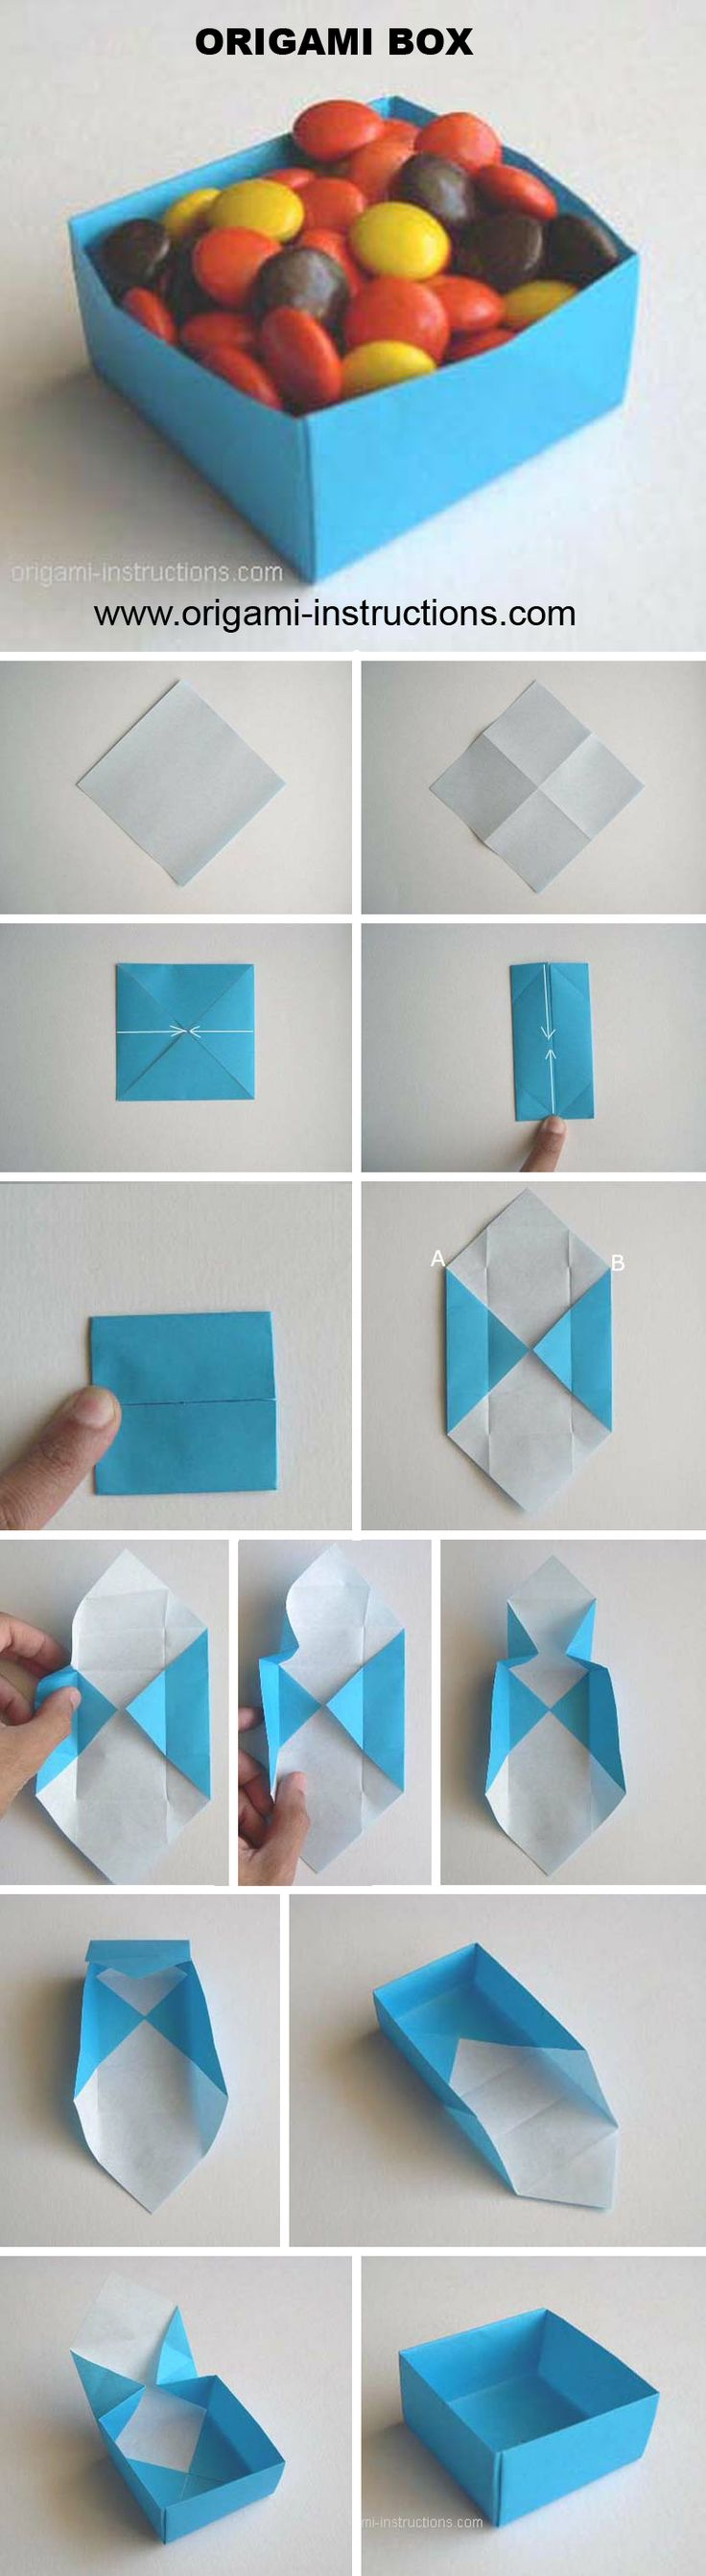 Origami Box  http://www.origami-instructions.com/origami-box-video.html